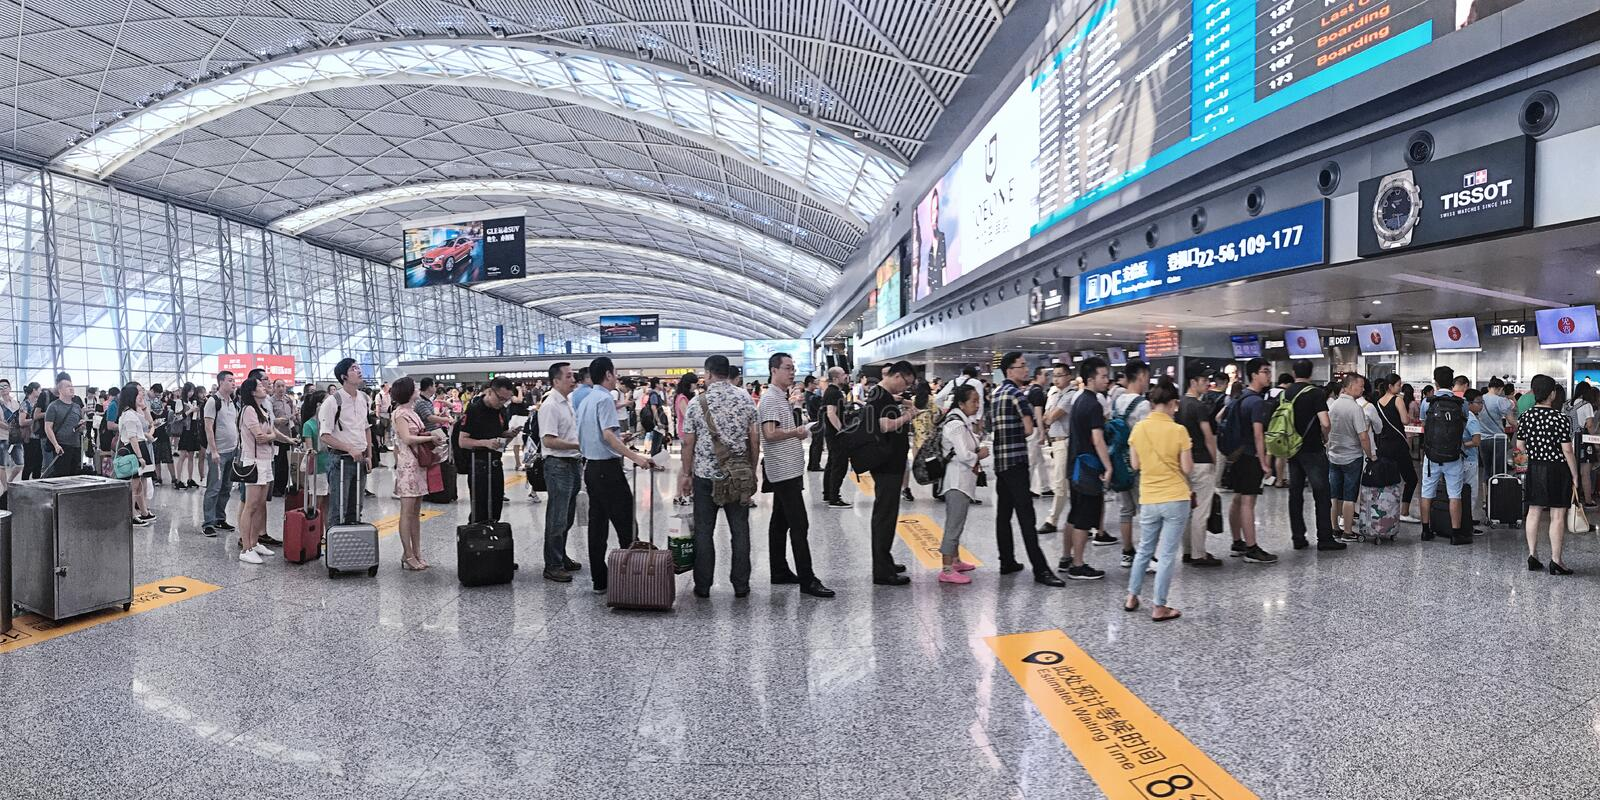 The Queue for Security Check. Interior of Shuangqiao Air Station,China